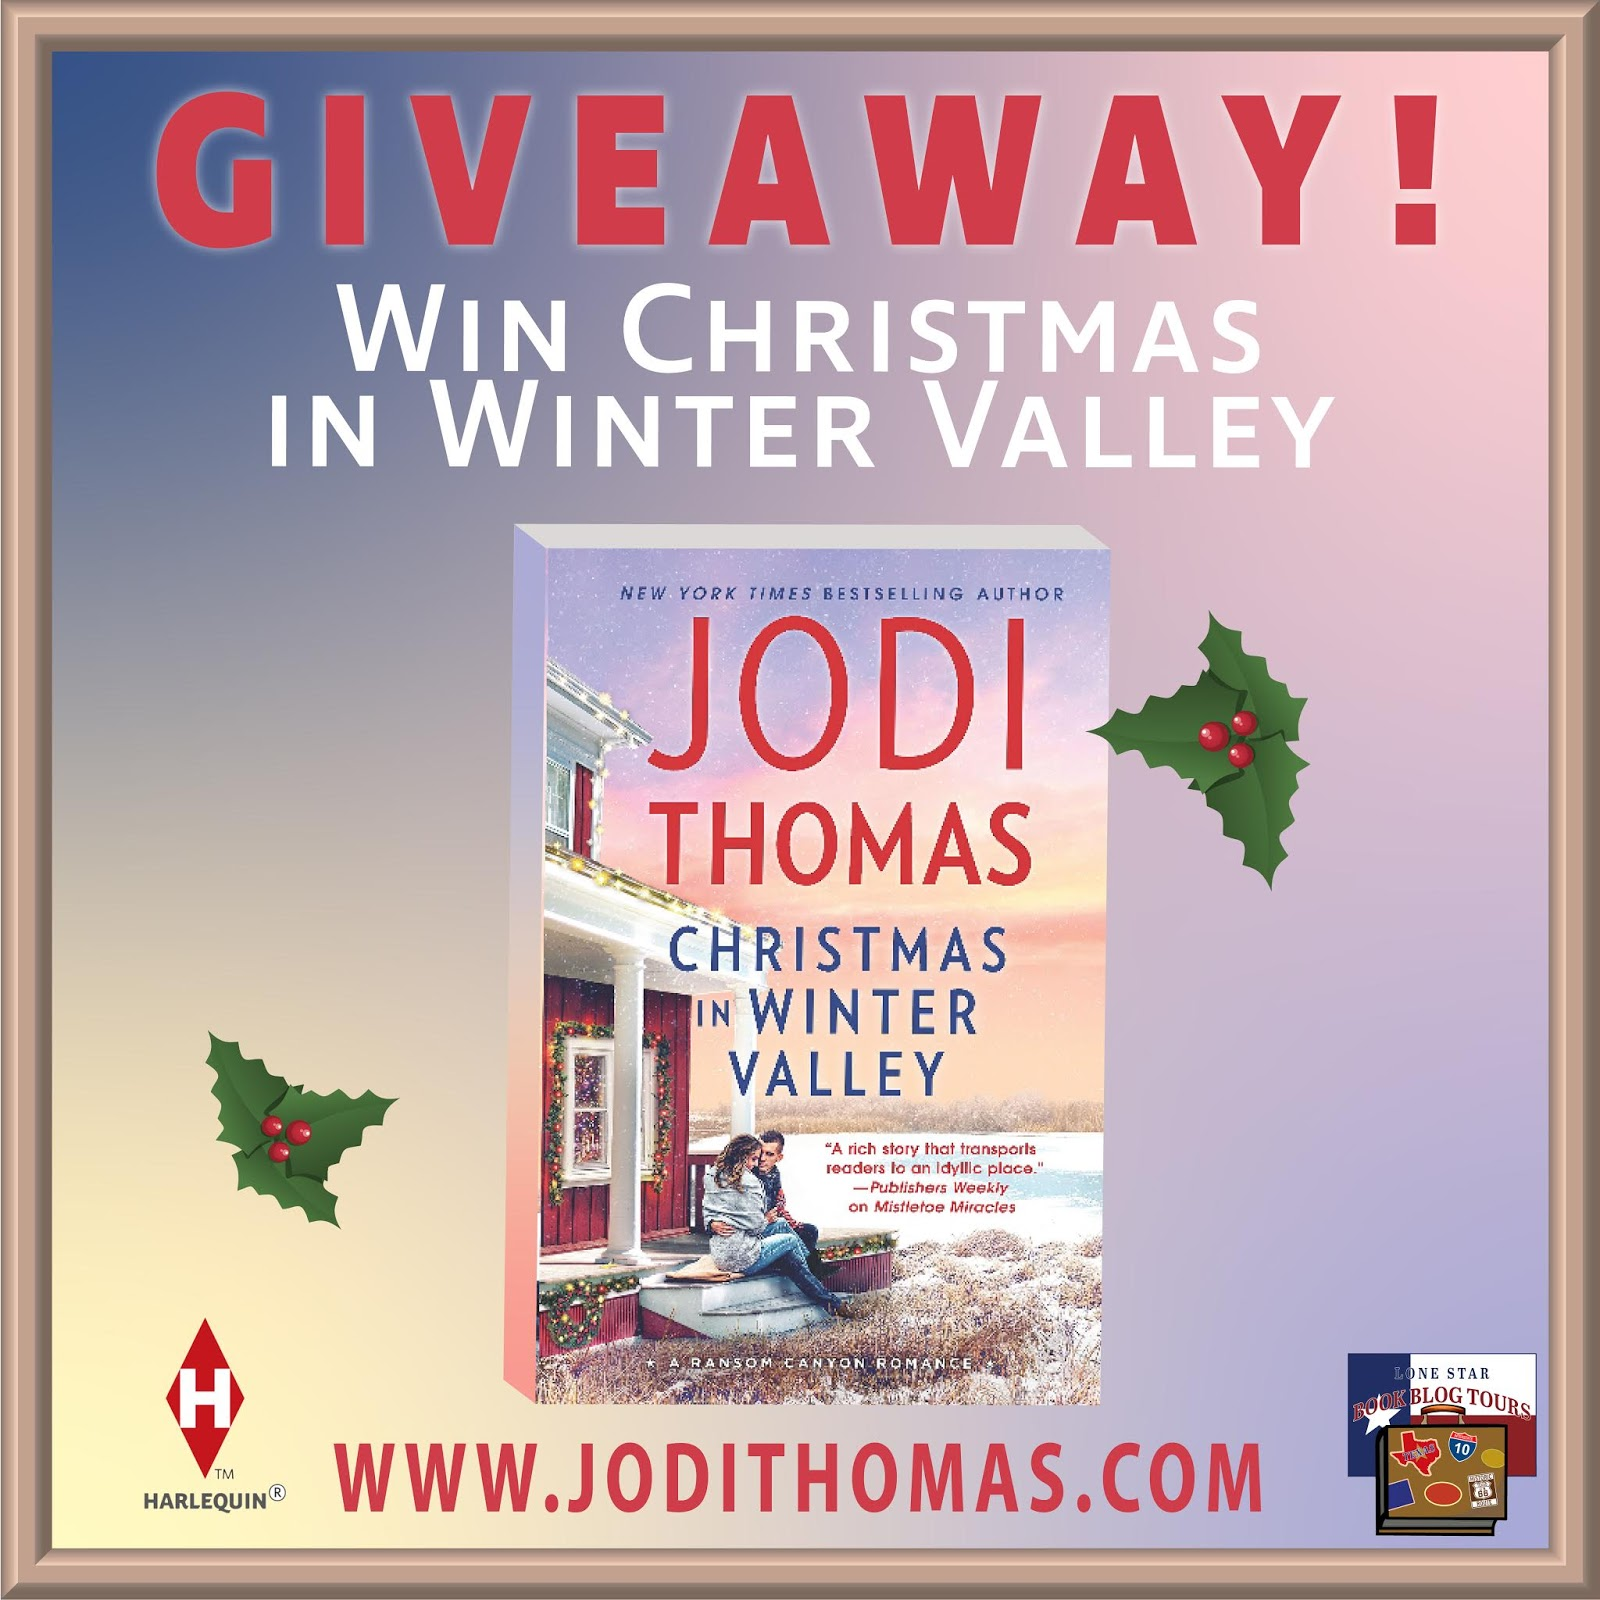 The Christmas in Winter Valley tour giveaway graphic